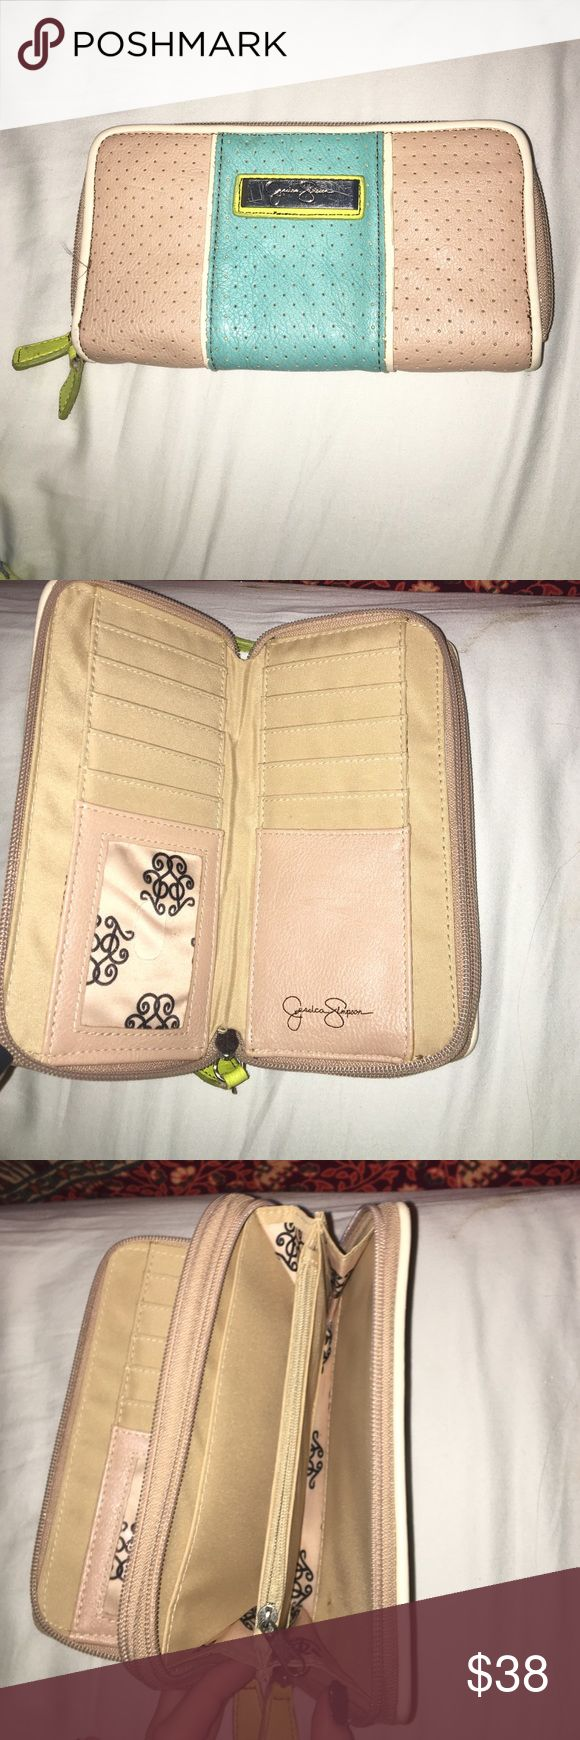 Jessica Simpson large 2 compartment wallet tan lime green and teal wallet with 2 zipper closures. leather & preforated! any questions please comment below :) id be glad to negotiate a price in your range😊 Jessica Simpson Bags Wallets